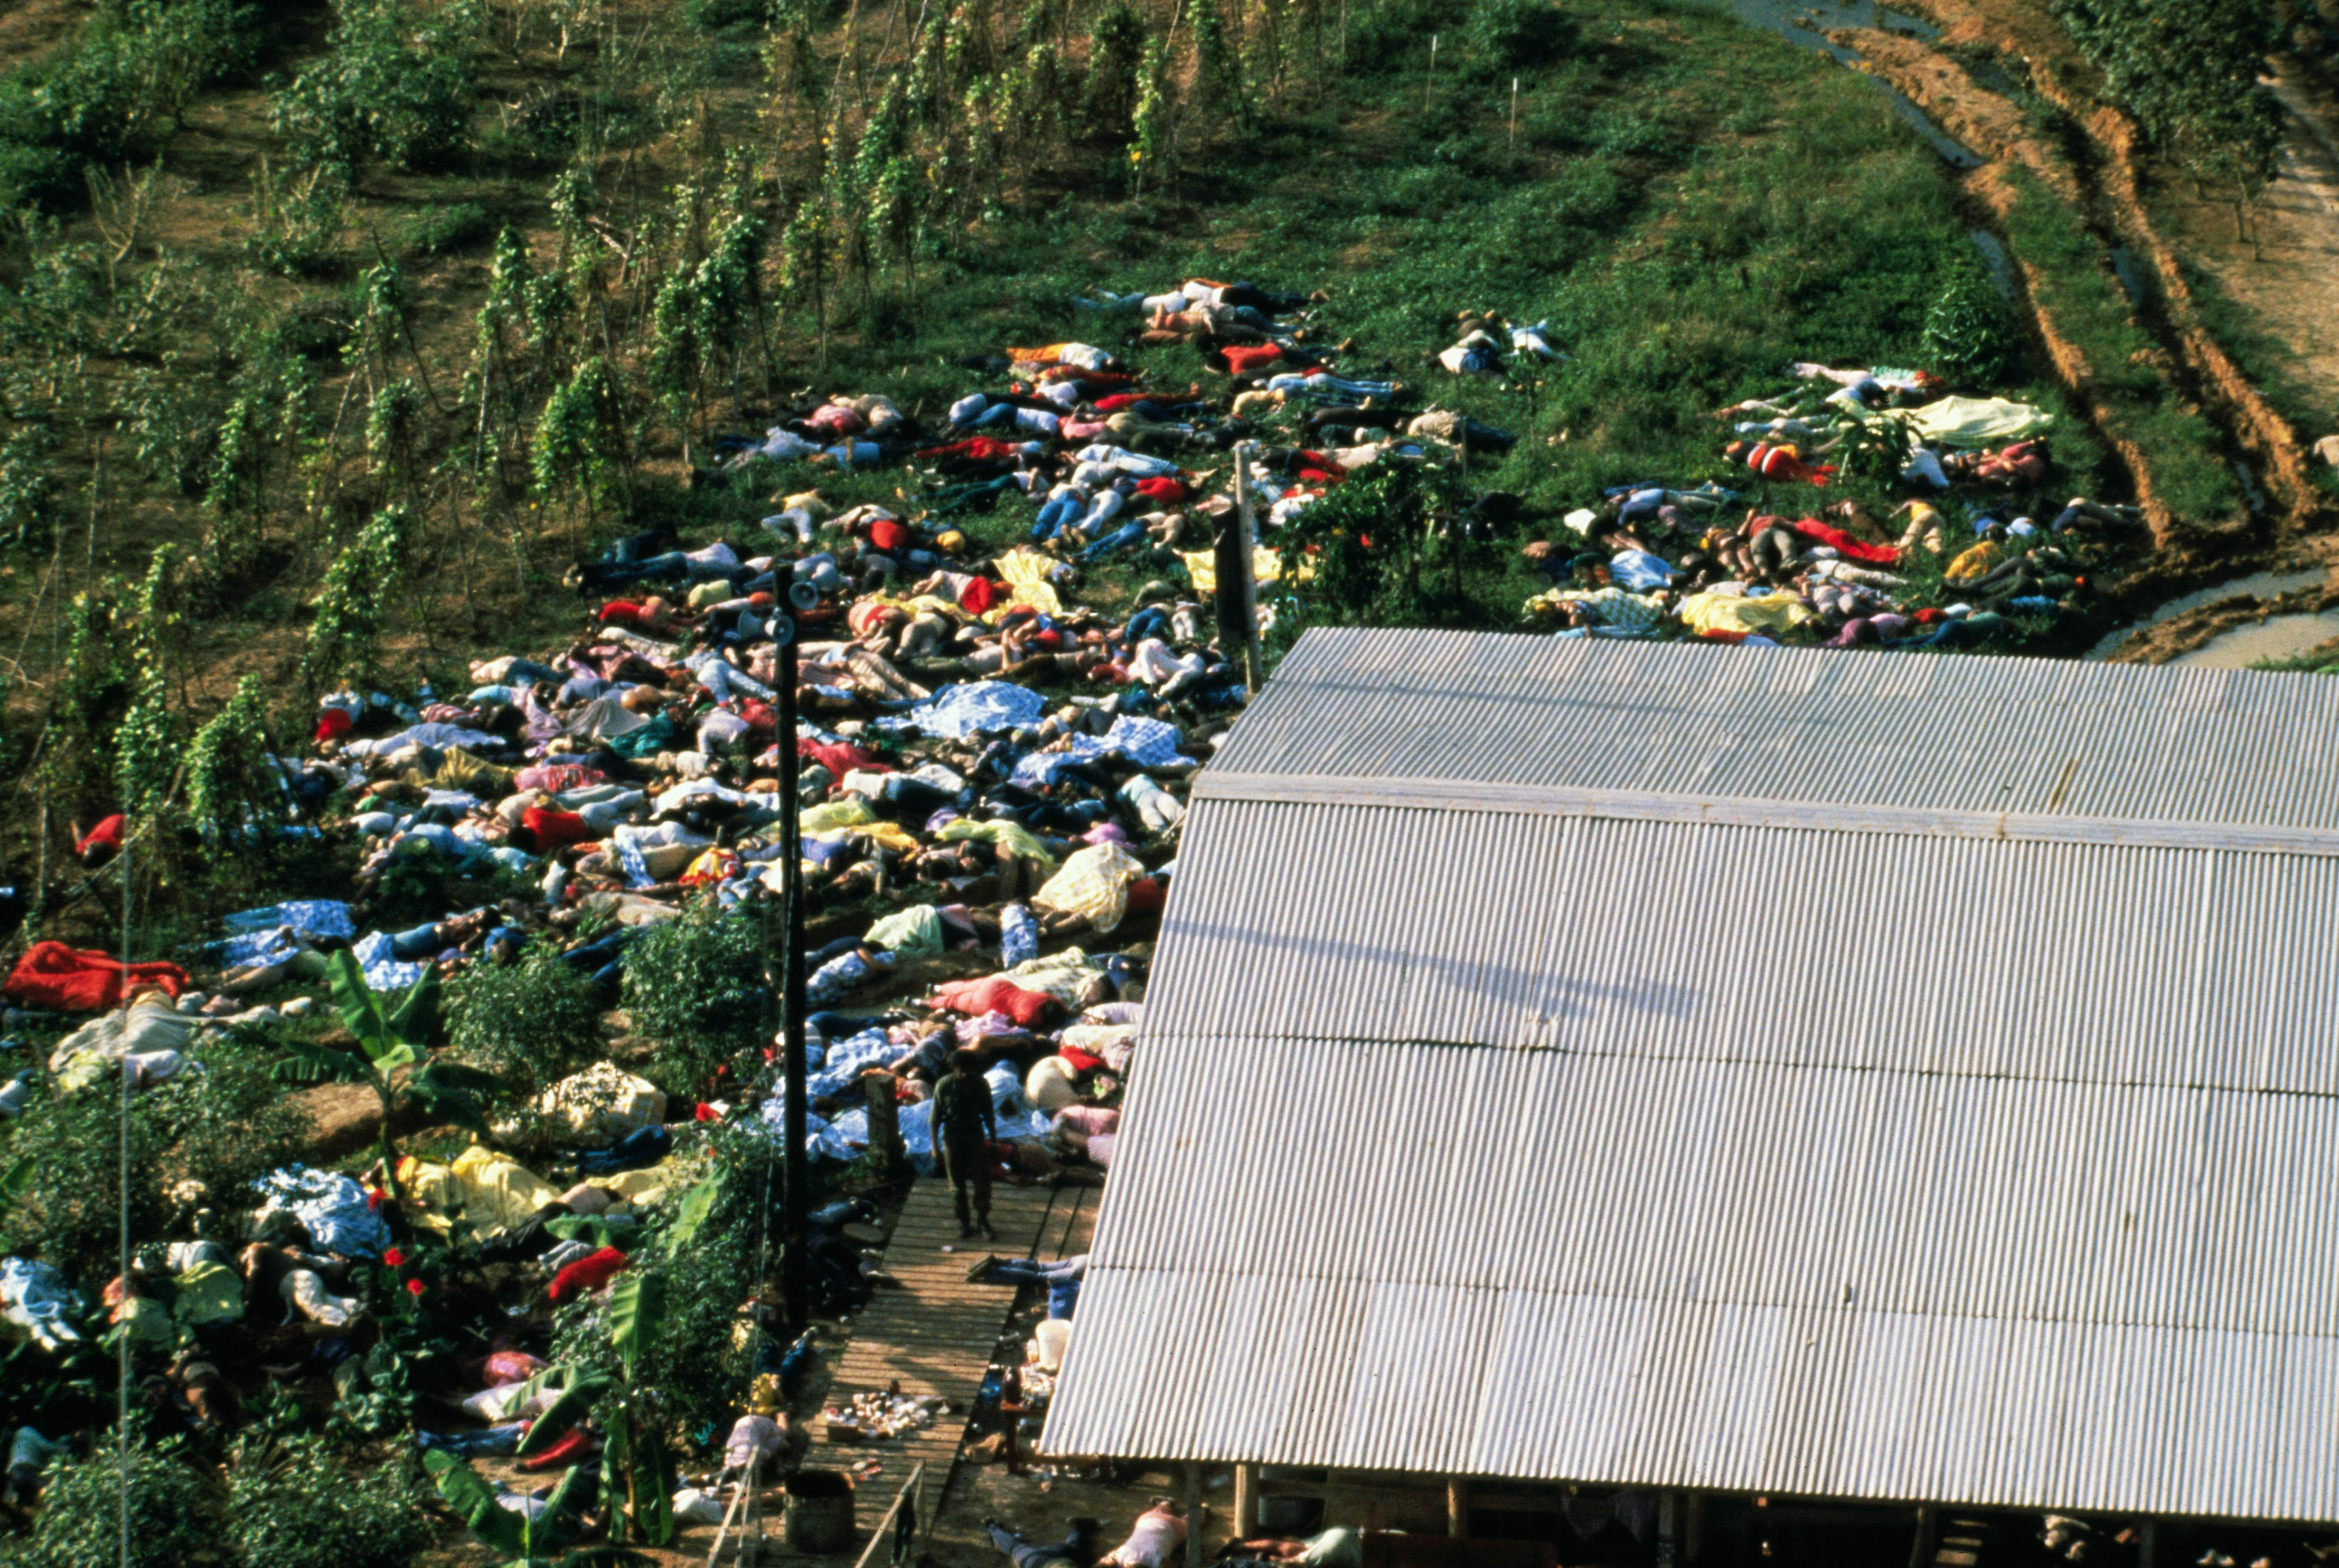 An apocalyptic cult, 900 dead: remembering the Jonestown massacre, 40 years on